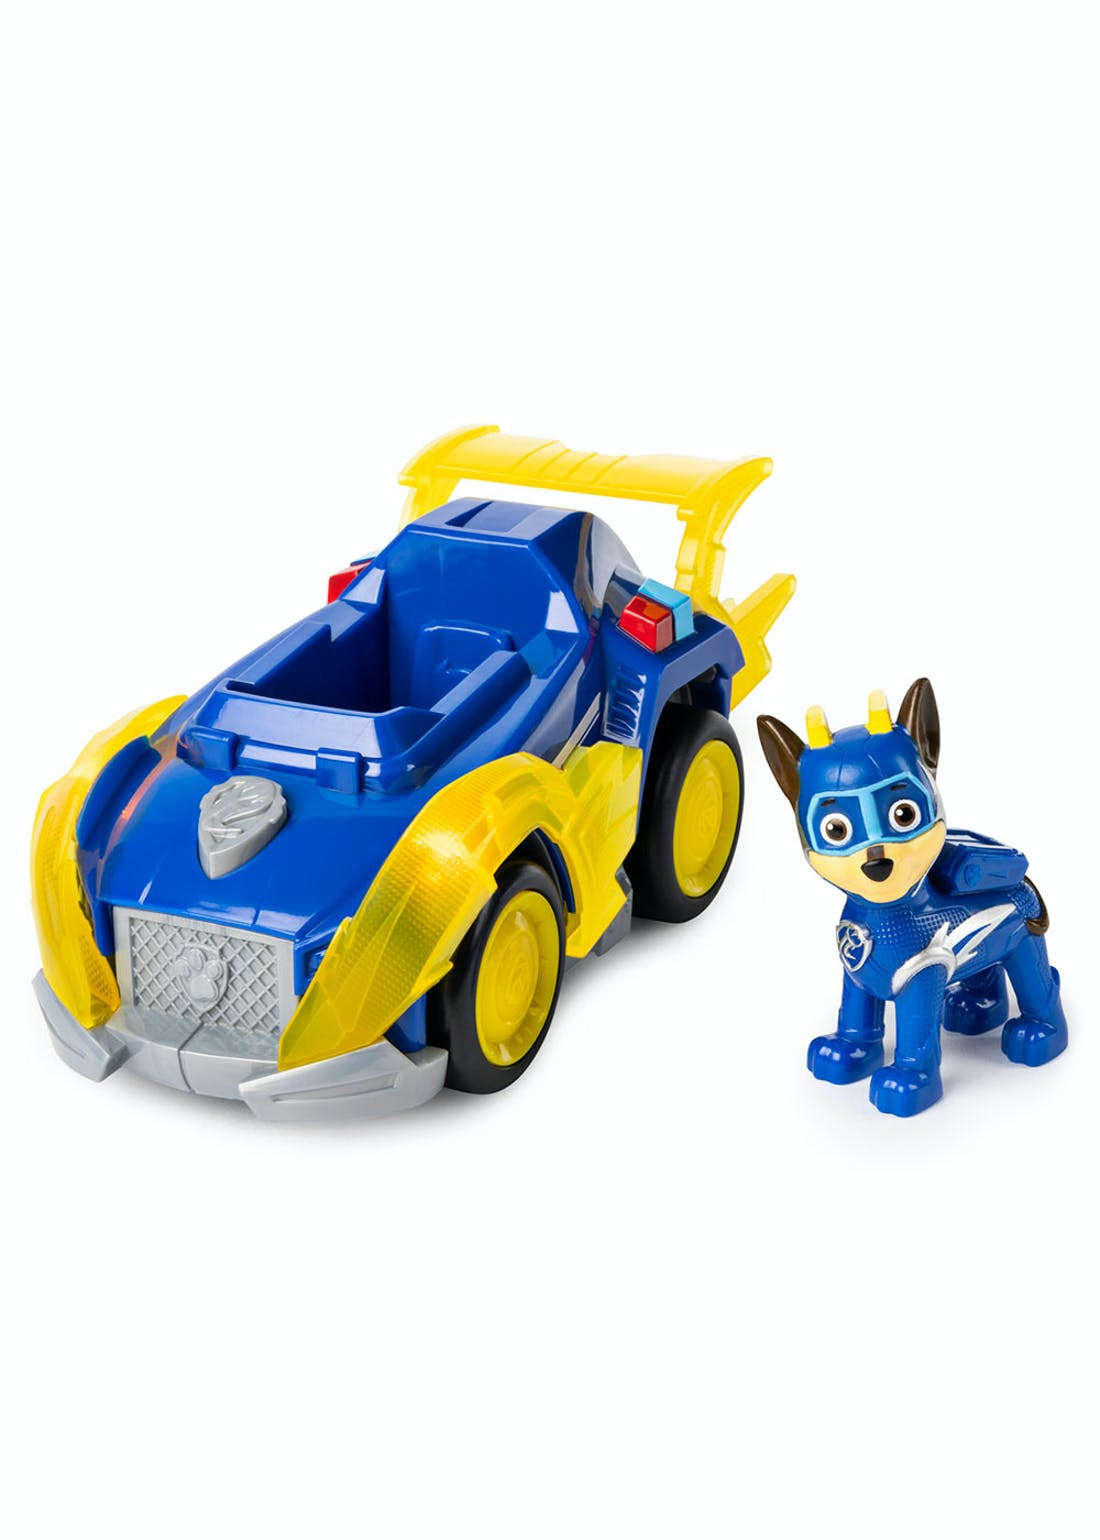 Paw Patrol Chase Mighty Pups Super Pups Deluxe Vehicle (23cm x 23cm x 9.5cm)